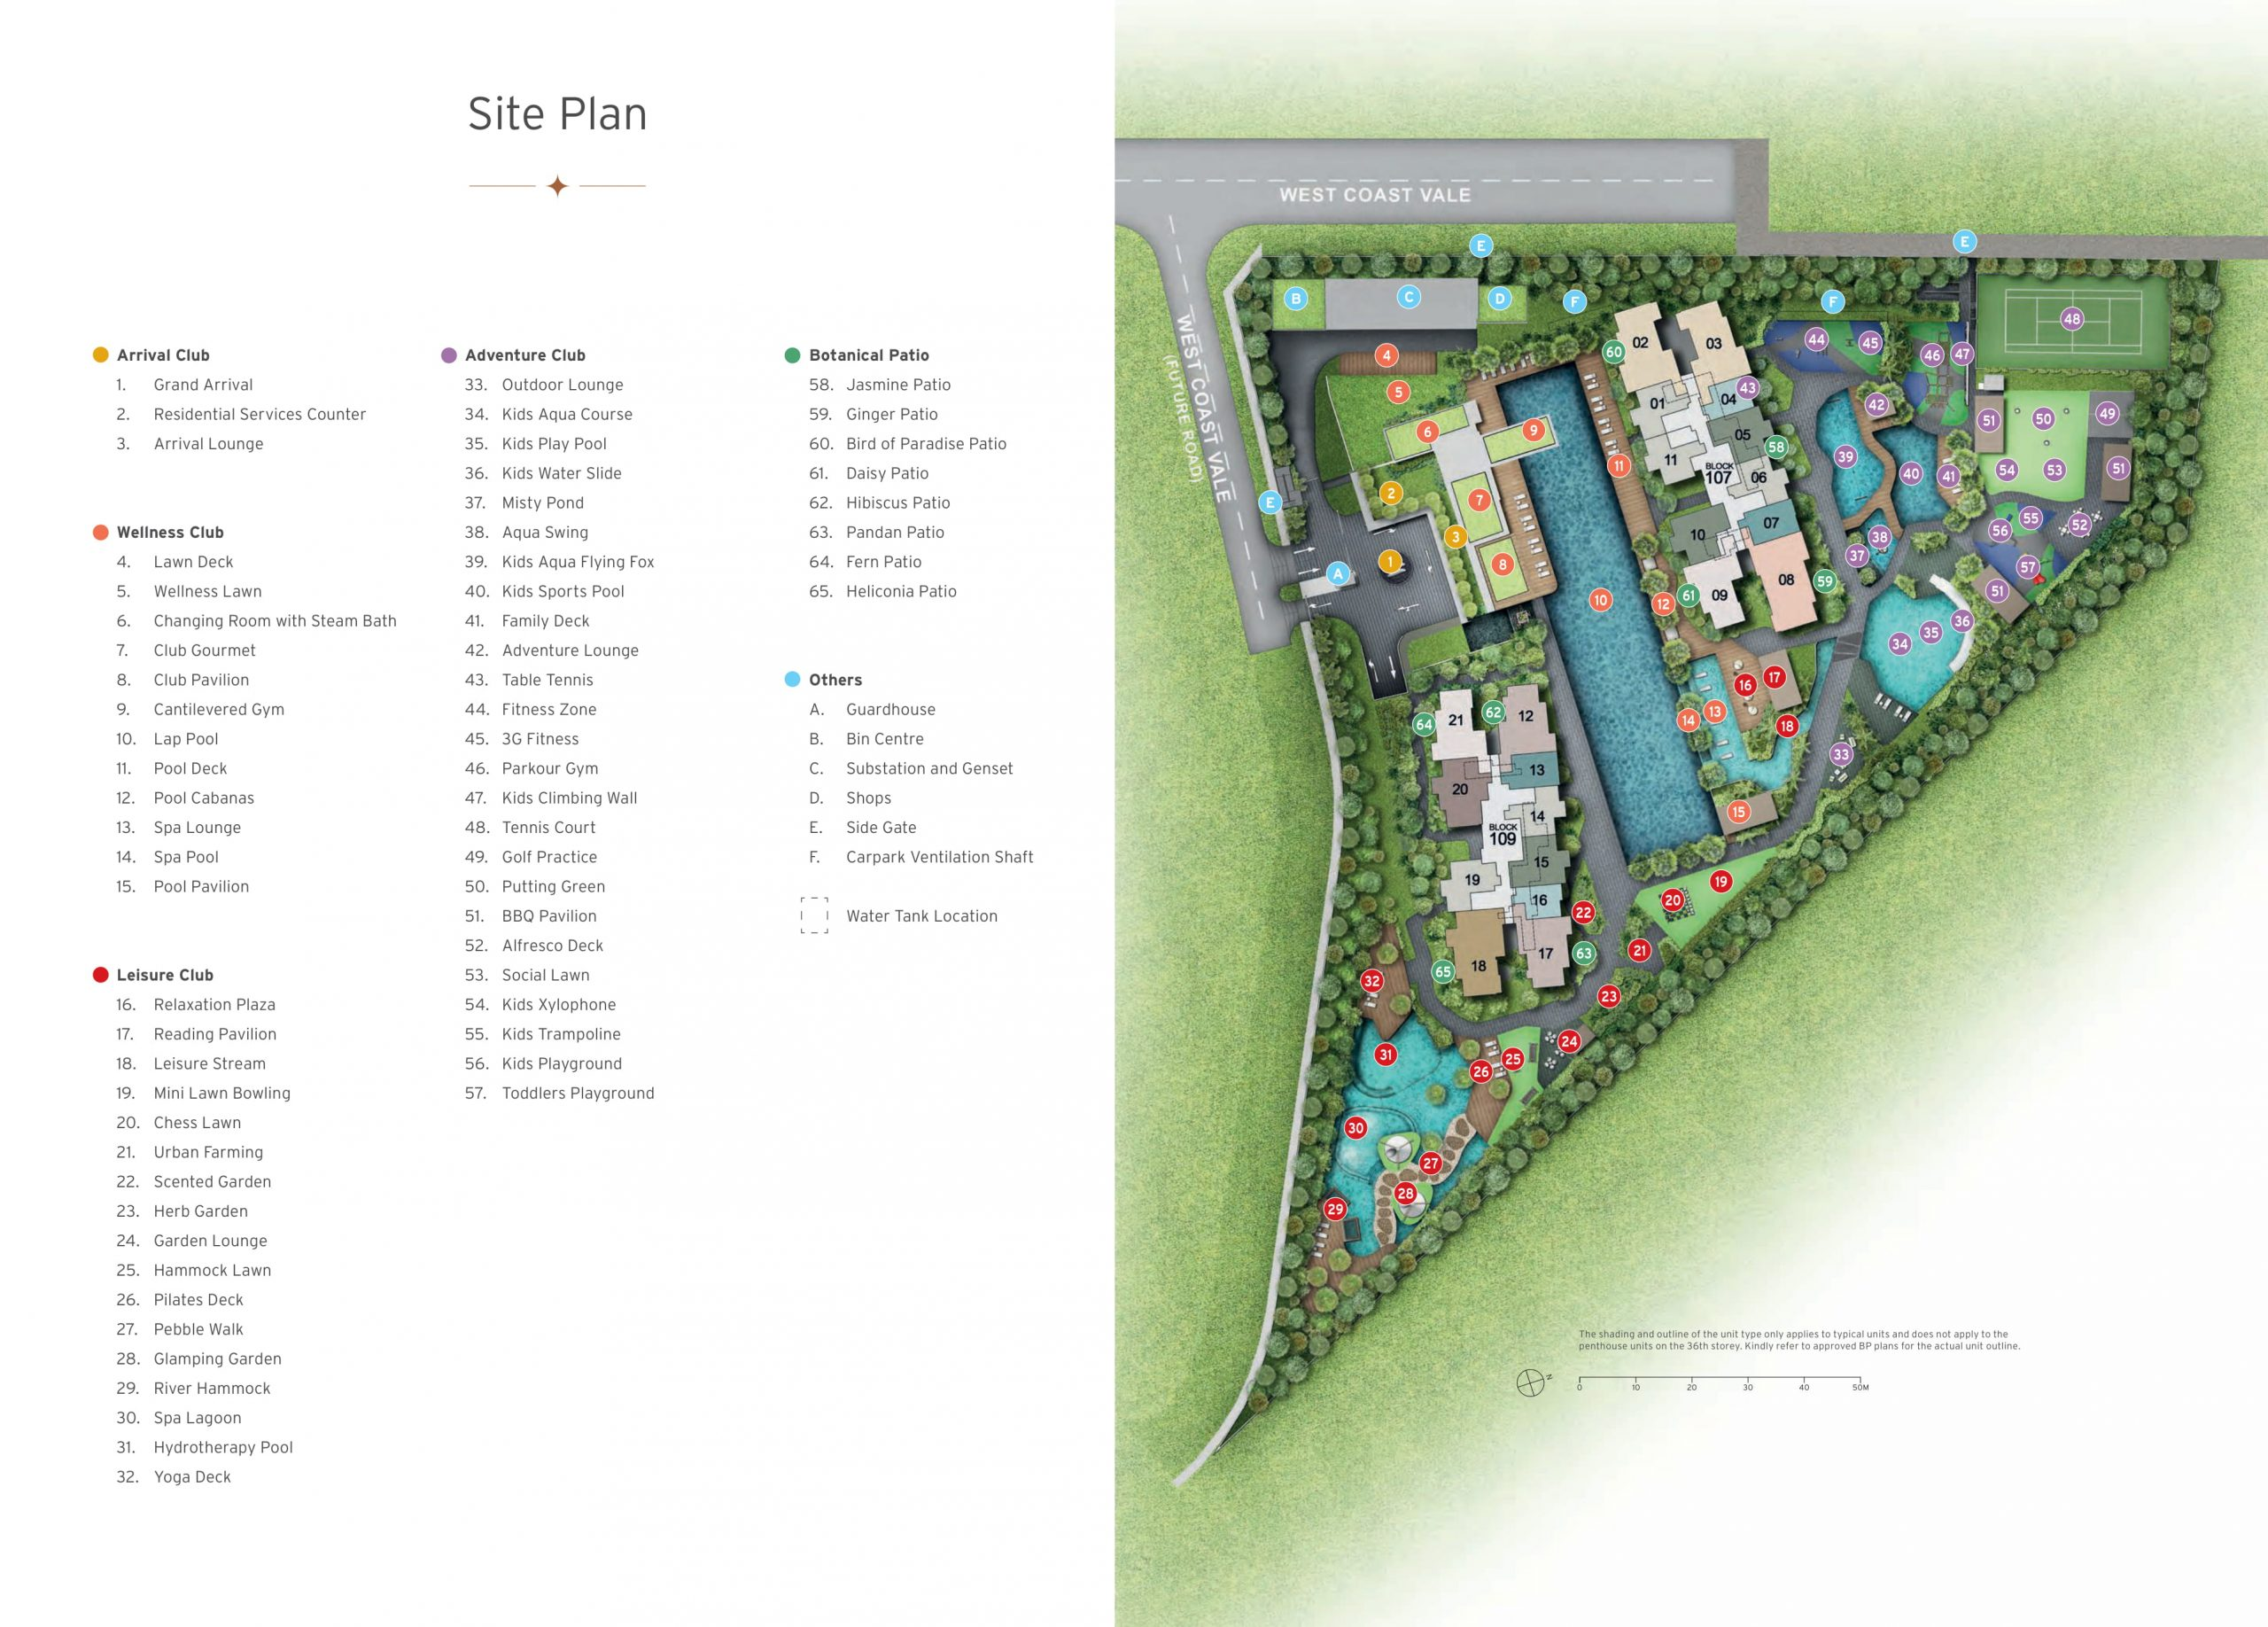 Whistler Grand's site plan and facilities